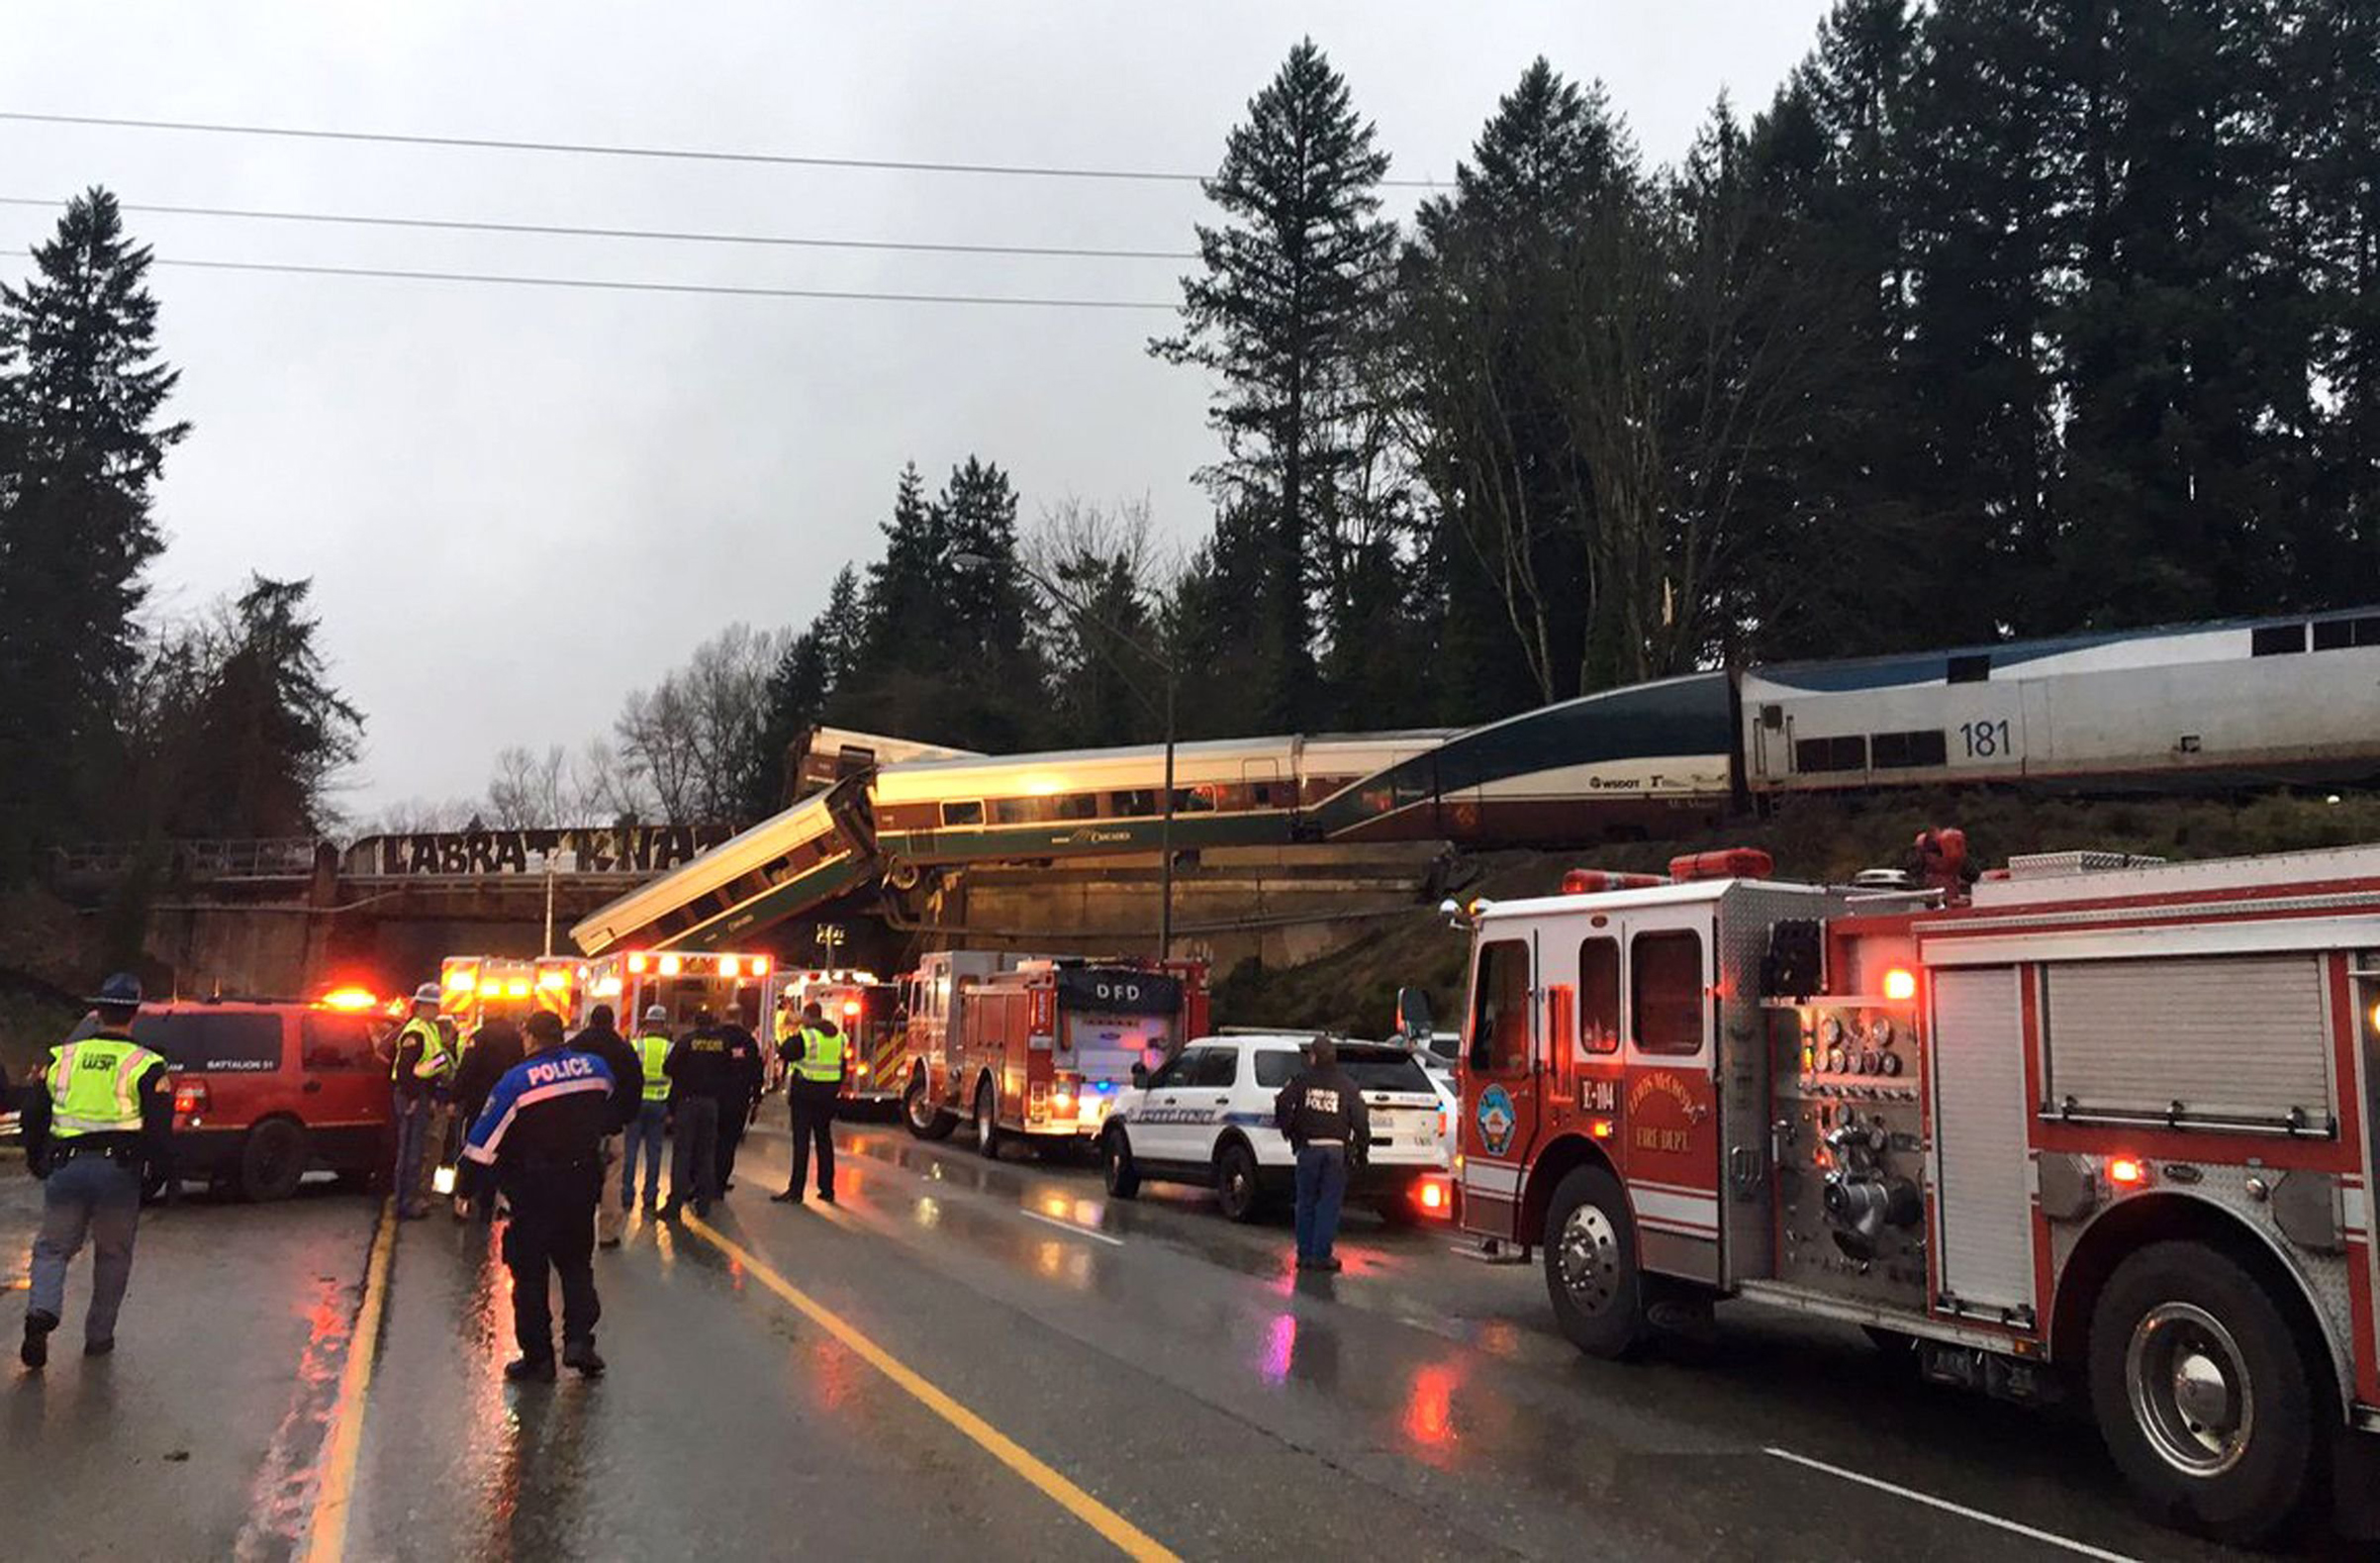 Donald Trump S Budget Would Cut Amtrak Infrastructure Funds Time